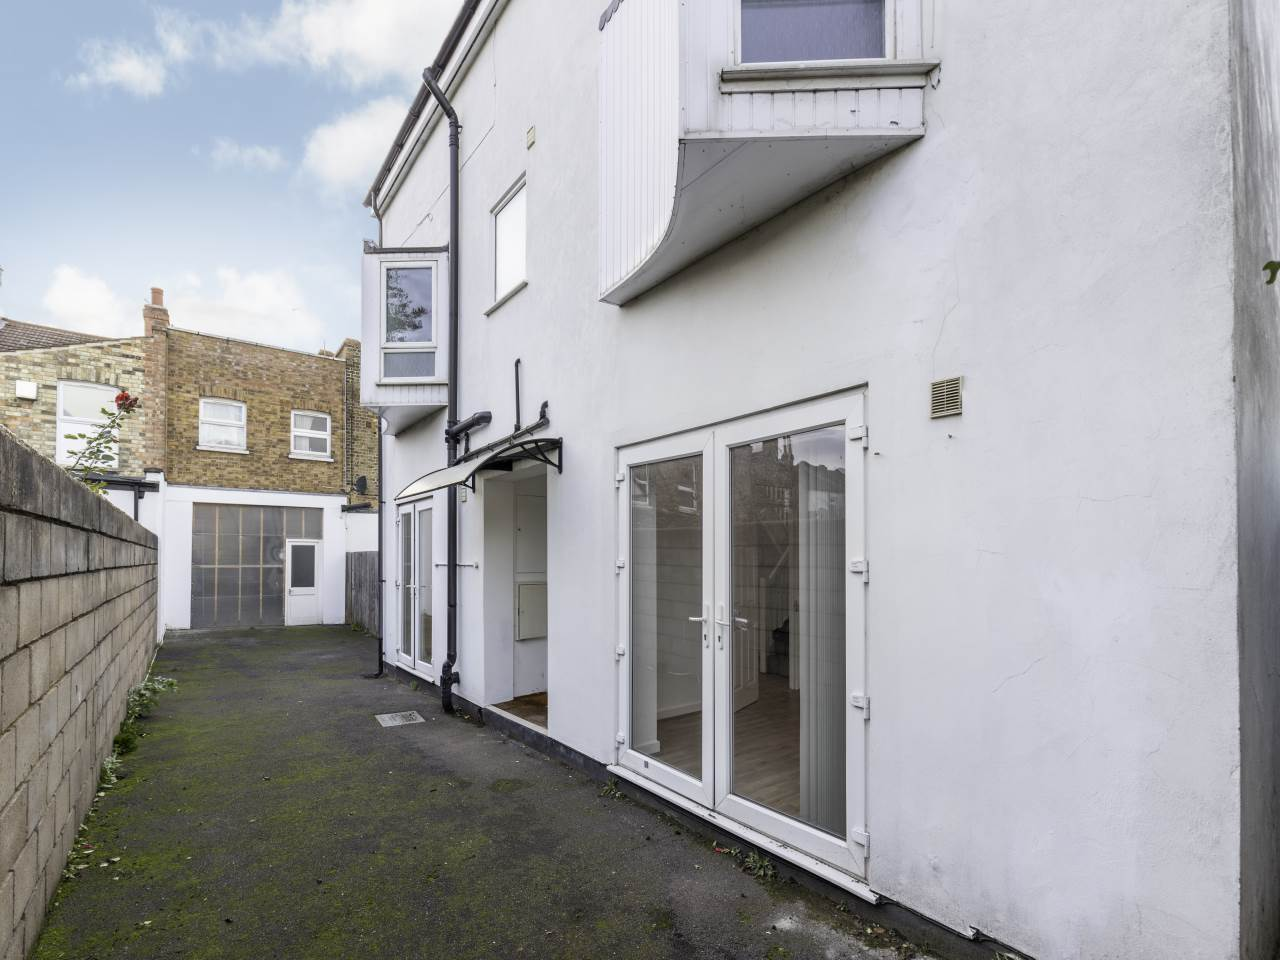 4 bed detached-house to rent in Forest Gate, E7